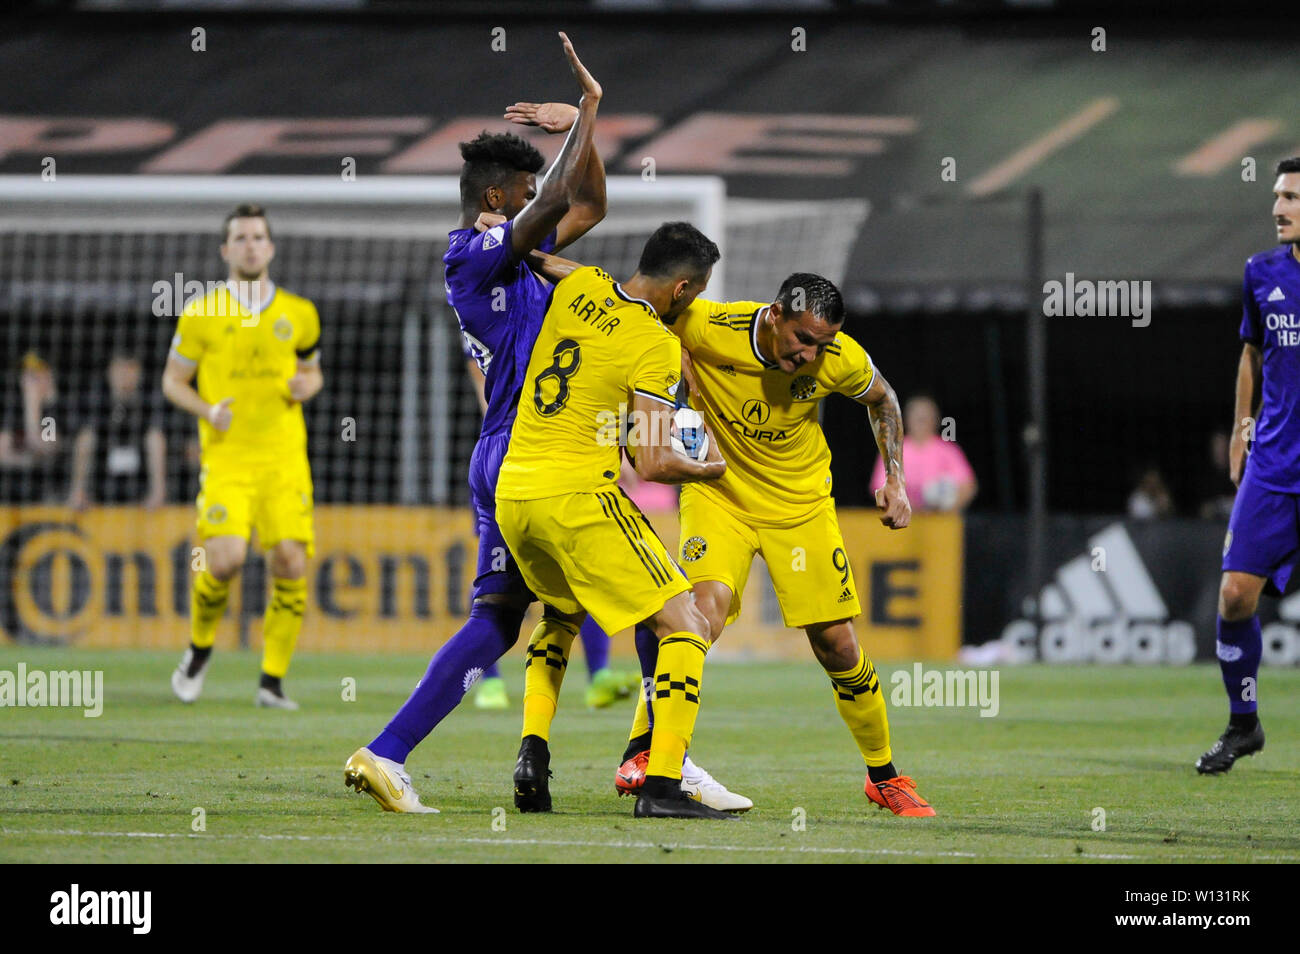 Saturday, June 29, 2019: Orlando City defender Carlos Ascues (26) books the ball attempting to use up time resulting in a yellow card in the first half of the match between Orlando City and Columbus Crew SC at MAPFRE Stadium, in Columbus OH. Mandatory Photo Credit: Dorn Byg/Cal Sport Media. Orlando City 2 - Columbus Crew SC 0 at the end of the match - Stock Image